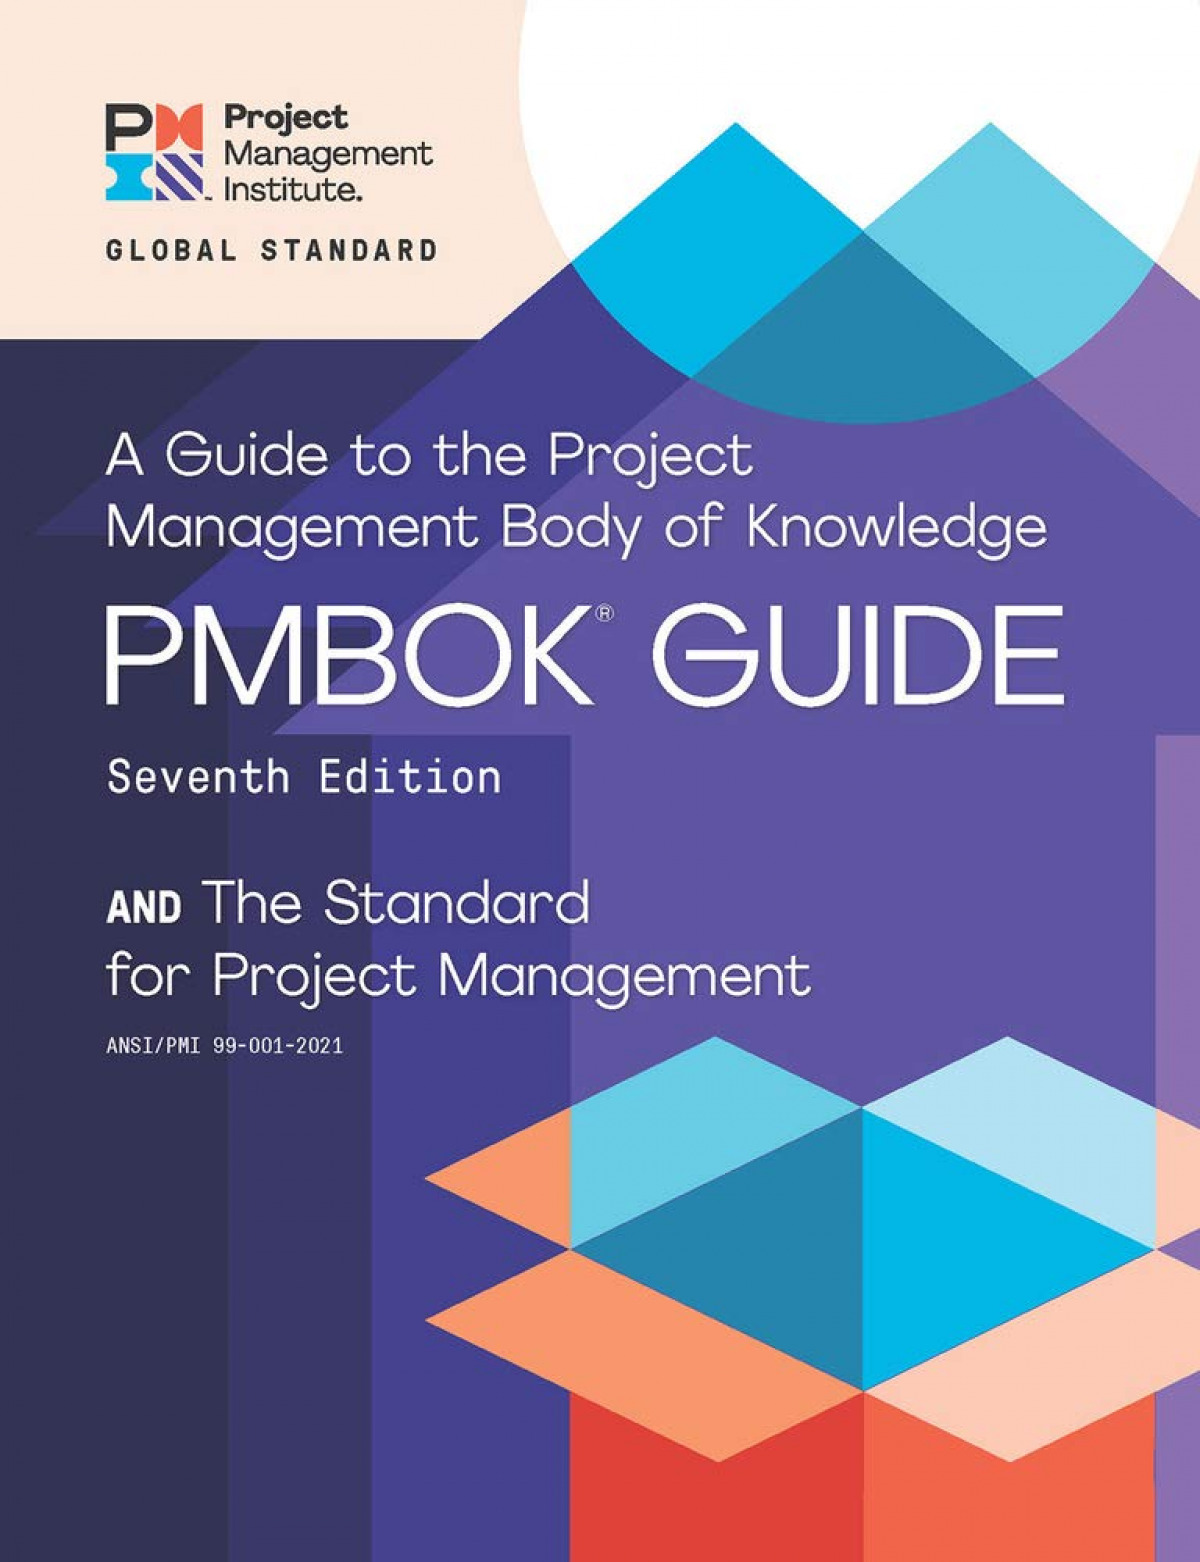 GUIDE TO THE PROJECT MANAGEMENT BODY KNOWLEDGE